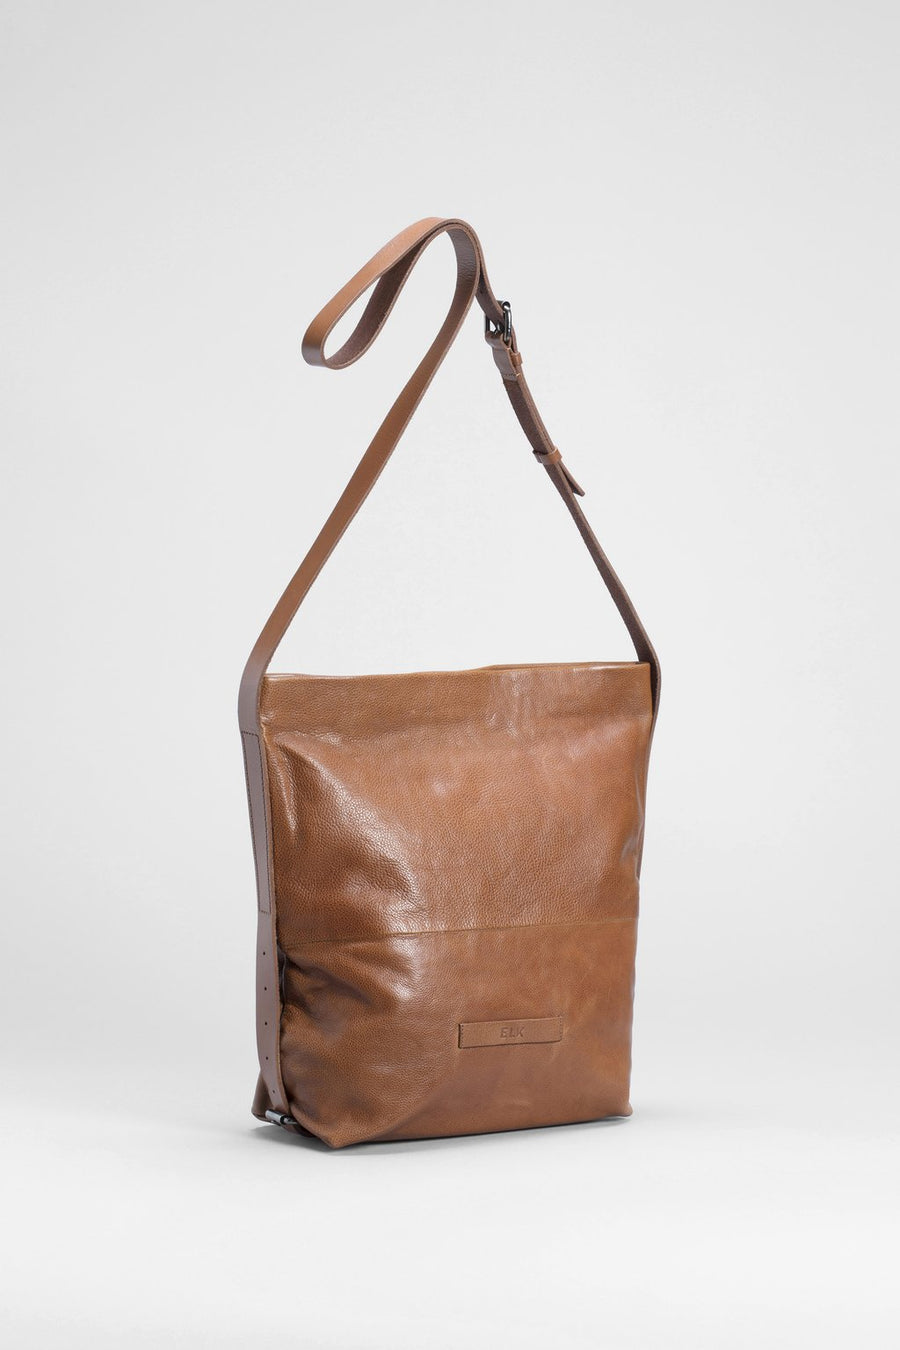 FIOLA BAG - Shop Online At Mookah - mookah.com.au